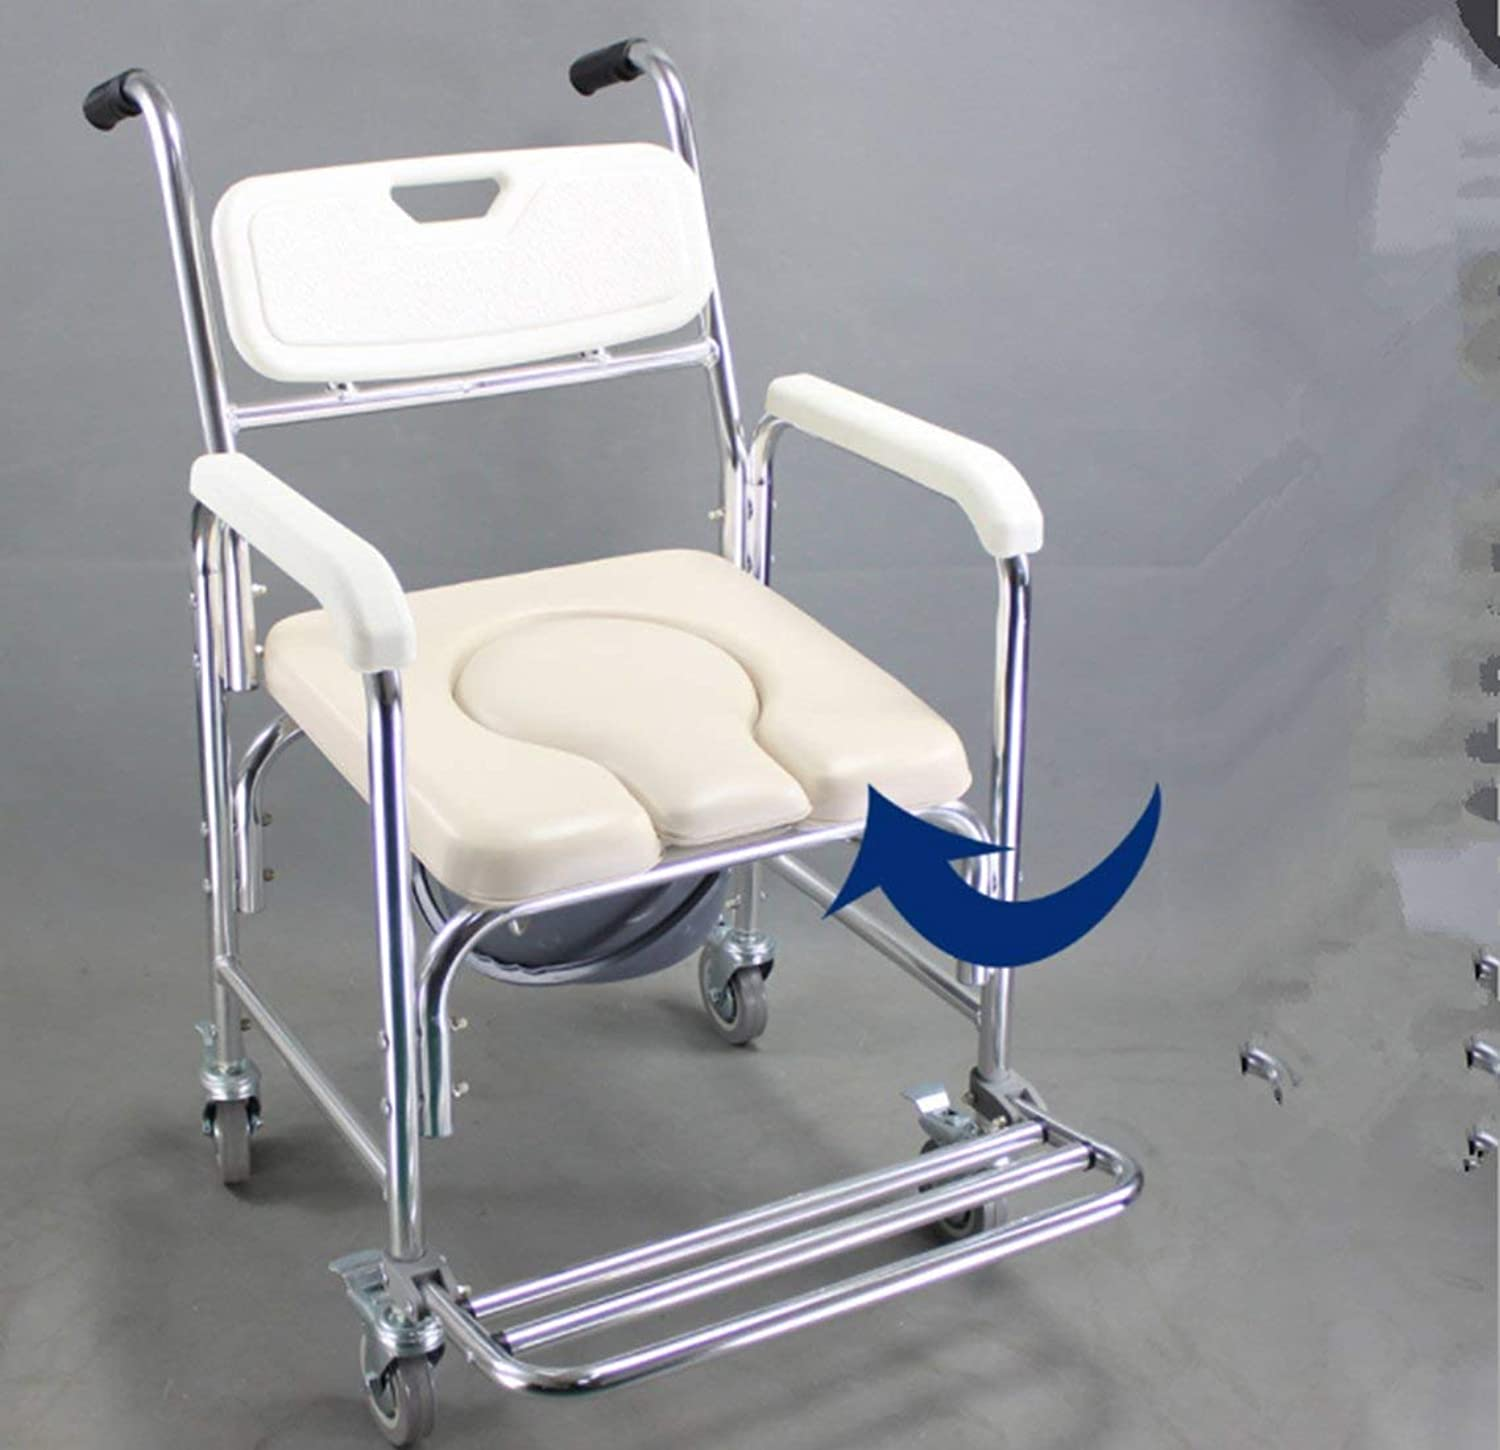 YINmume Shower Bedside Commode With Armrests With Health Line, Toilet With Roller Shower Chair With Casters (4 Wheel Brakes), Toilet Seat Backrest And Seat,2